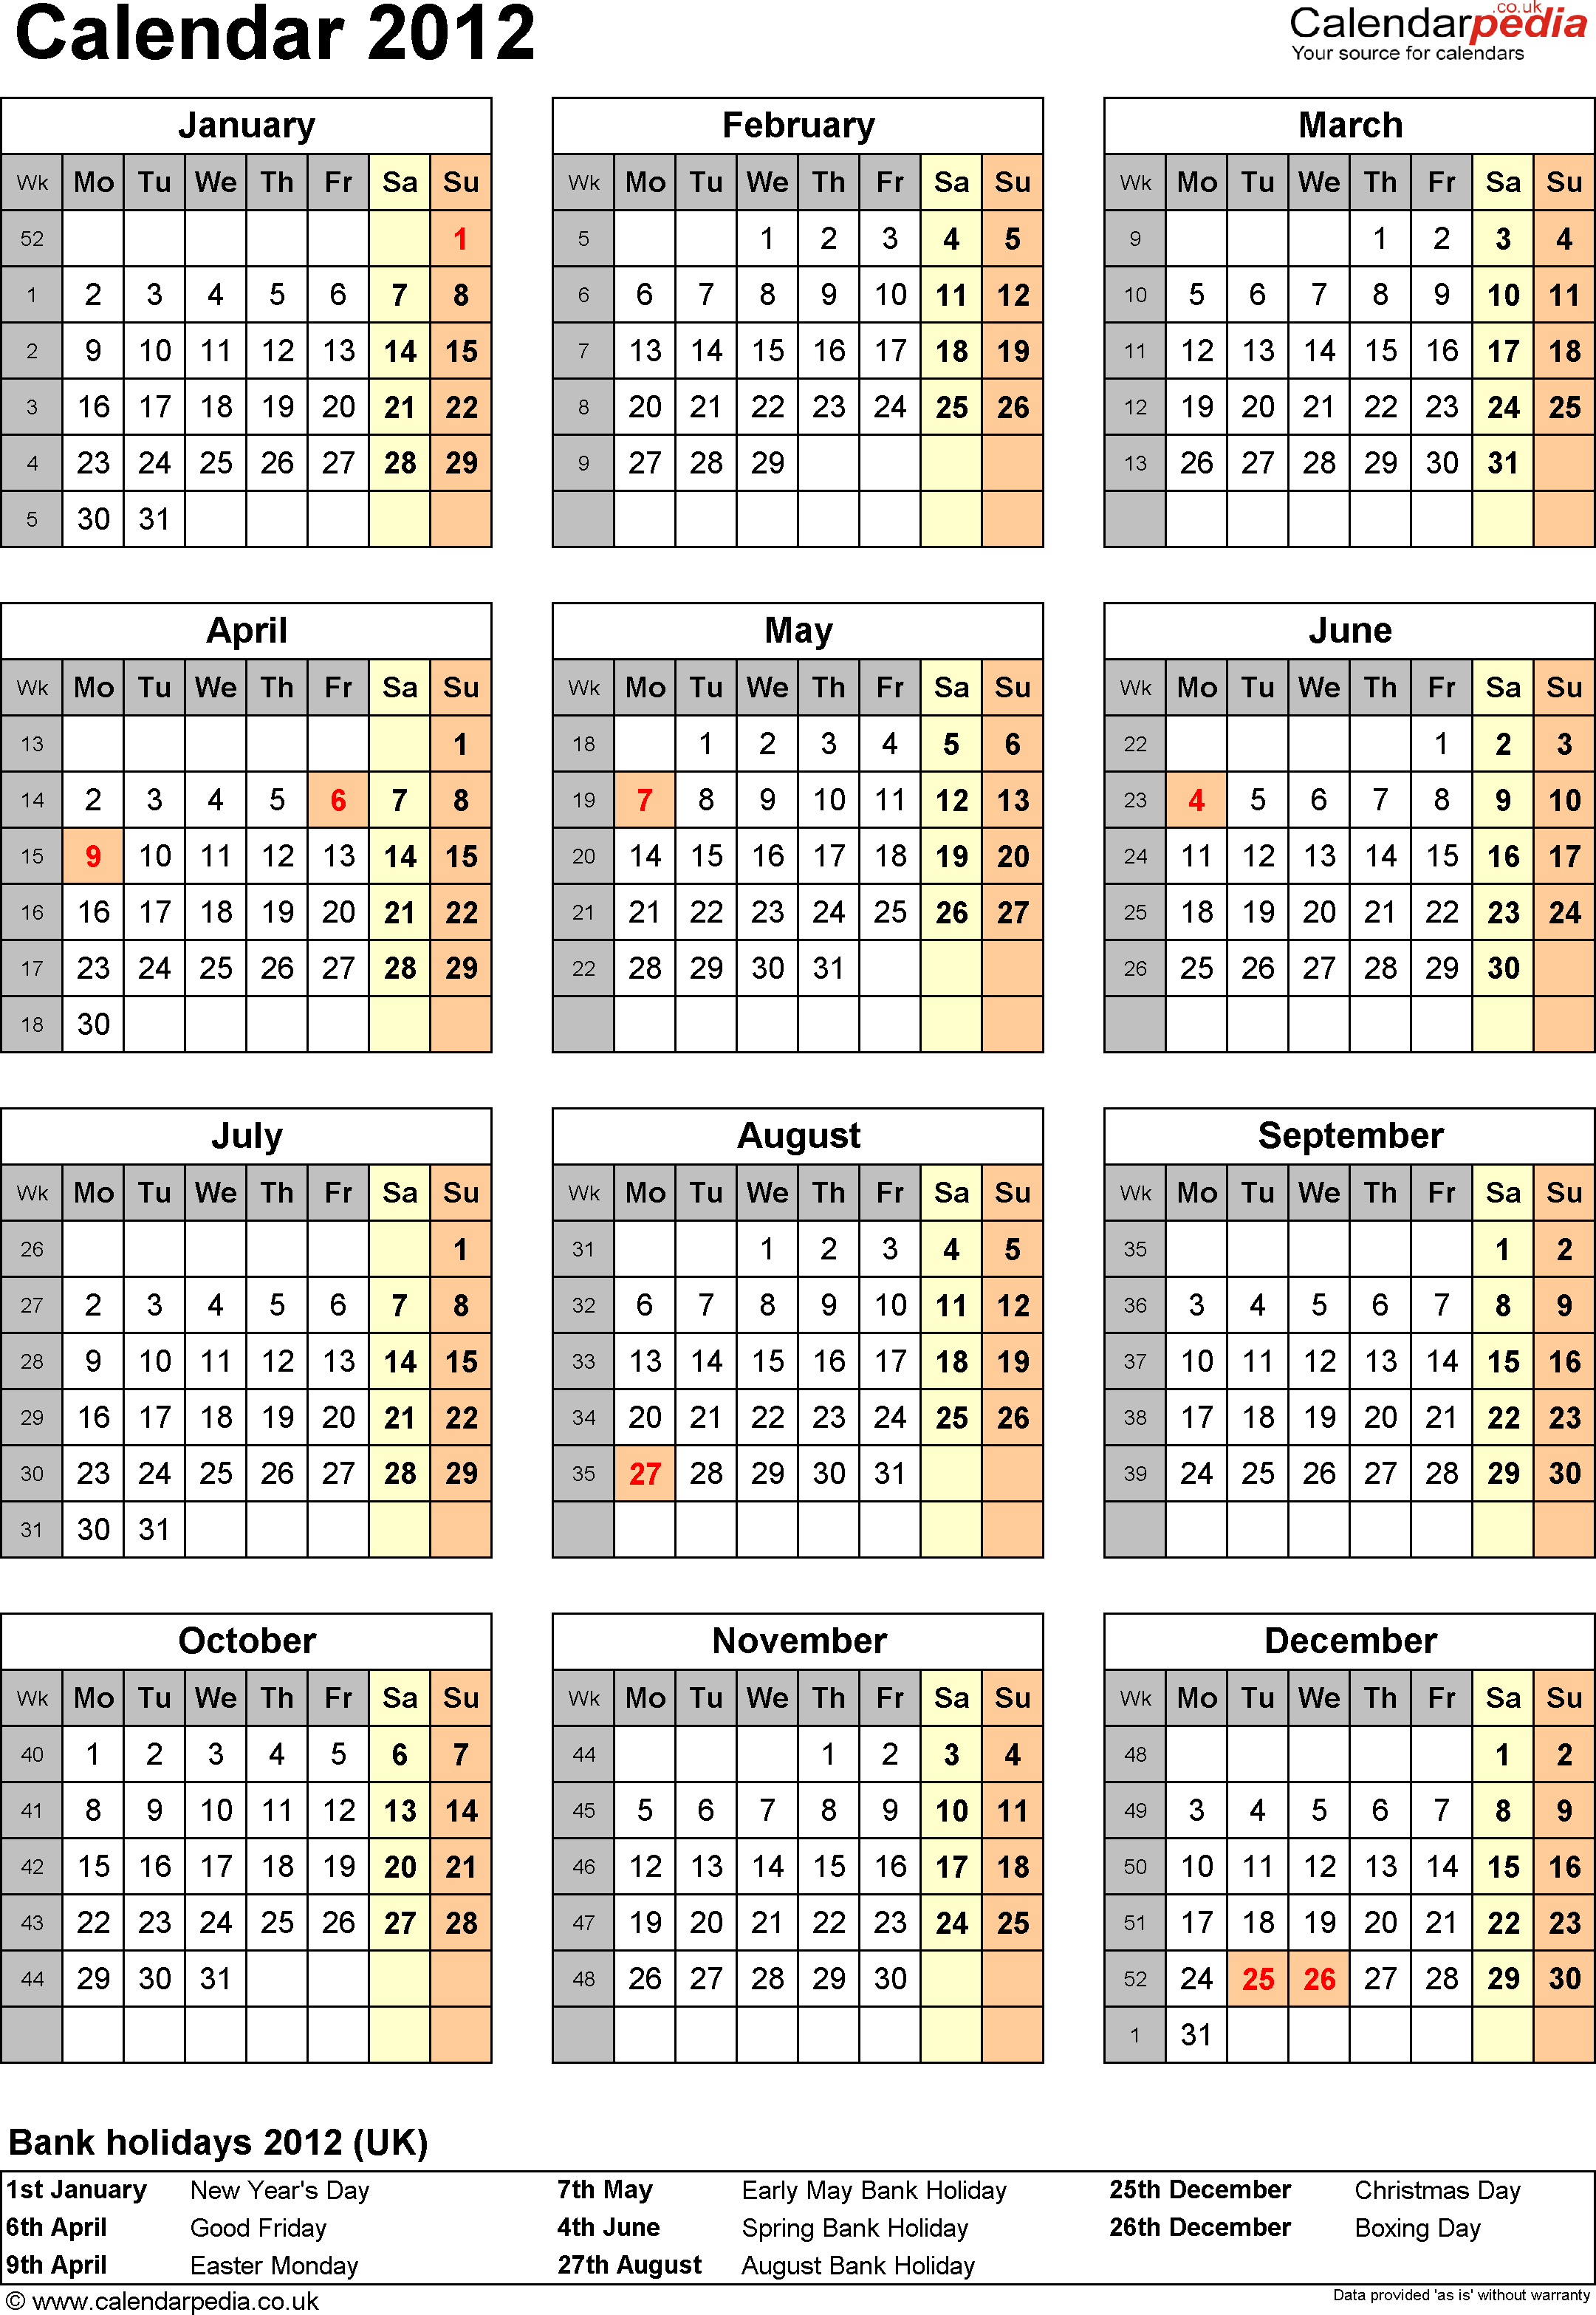 Template 11: Yearly calendar 2012 as PDF template, portrait orientation, 1 A4 page